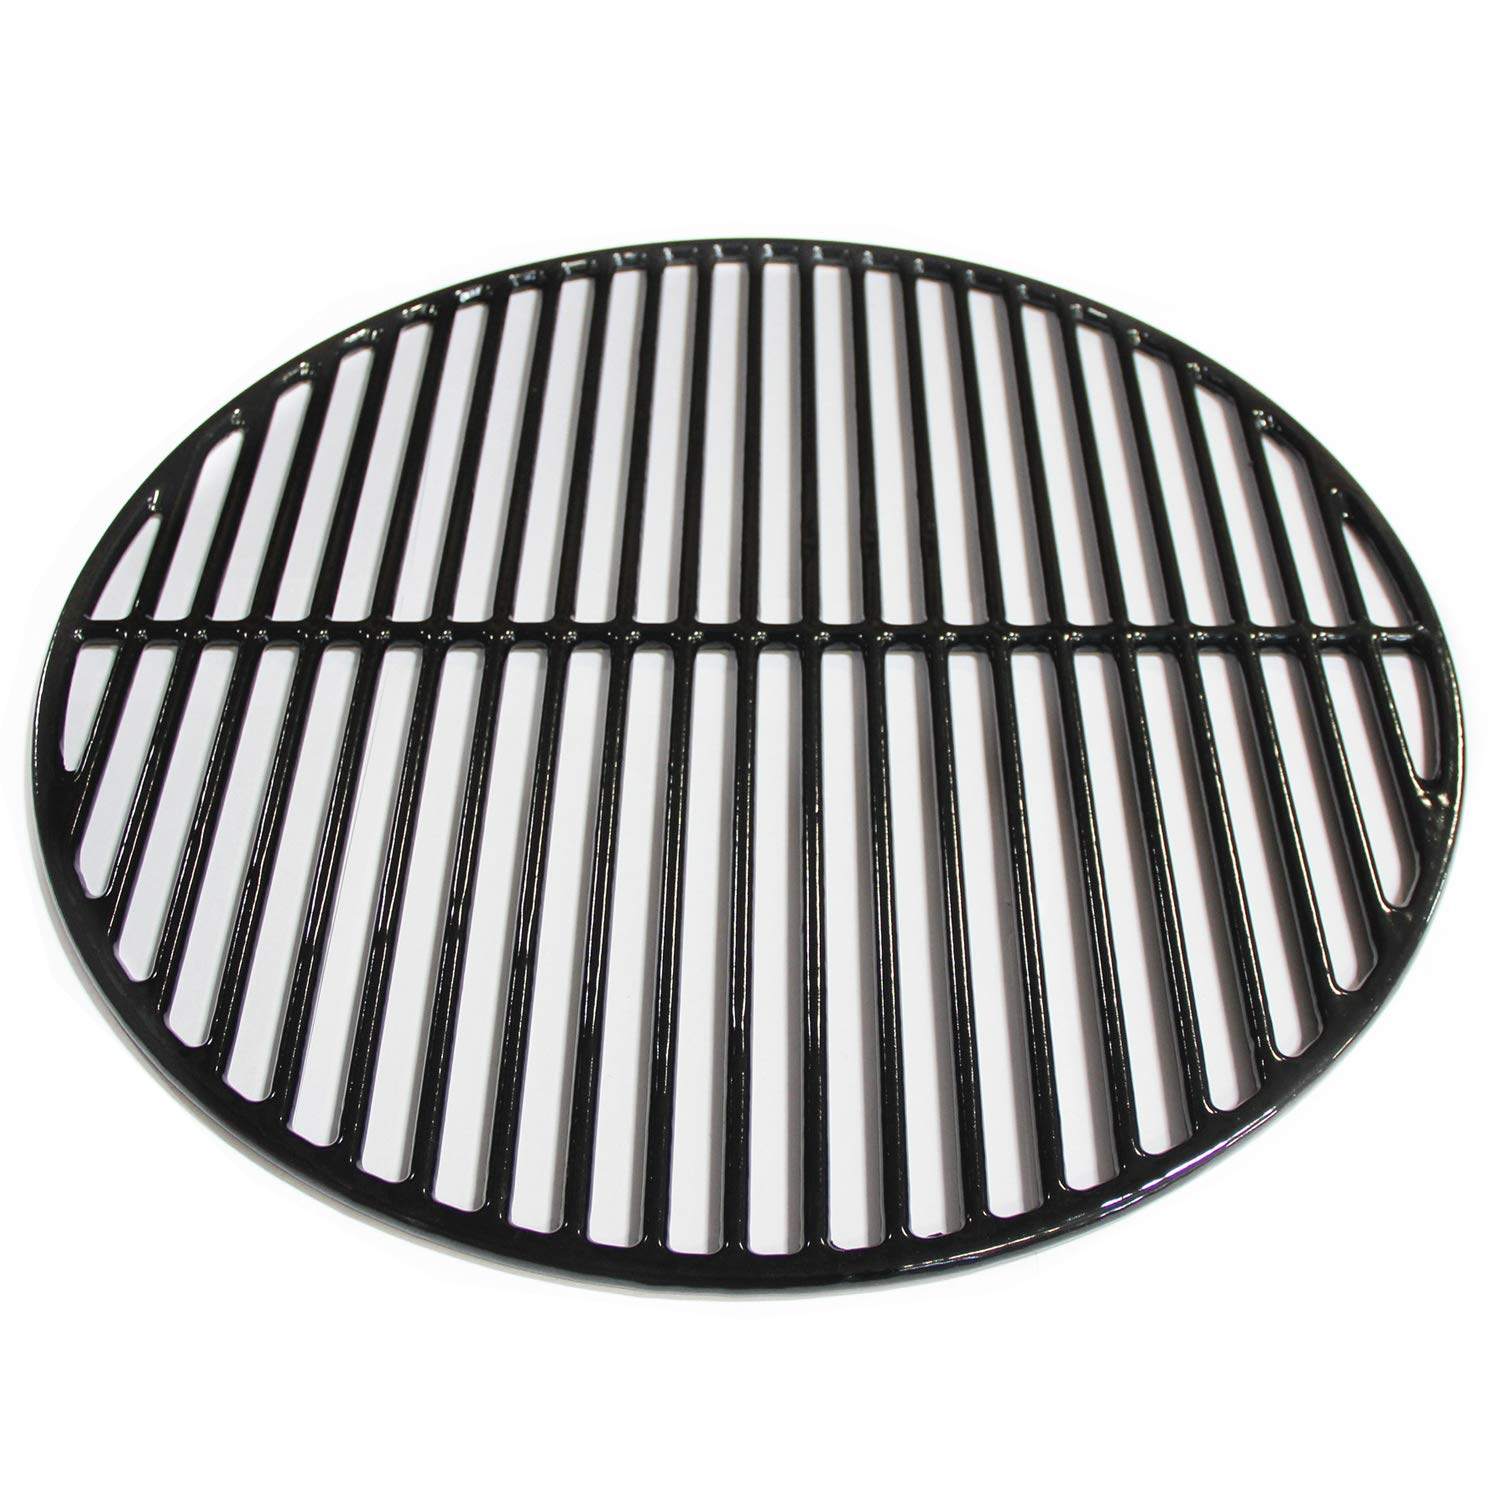 Hongso Porcelain Coated Cast Iron Cooking Grid Grates Replacement for Large Big Green Egg, Vision Grill VGKSS-CC2, B-11N1A1-Y2A, BGE, Accessories,Other Kamado Grill, 18.5'' Grill Grate PCI991